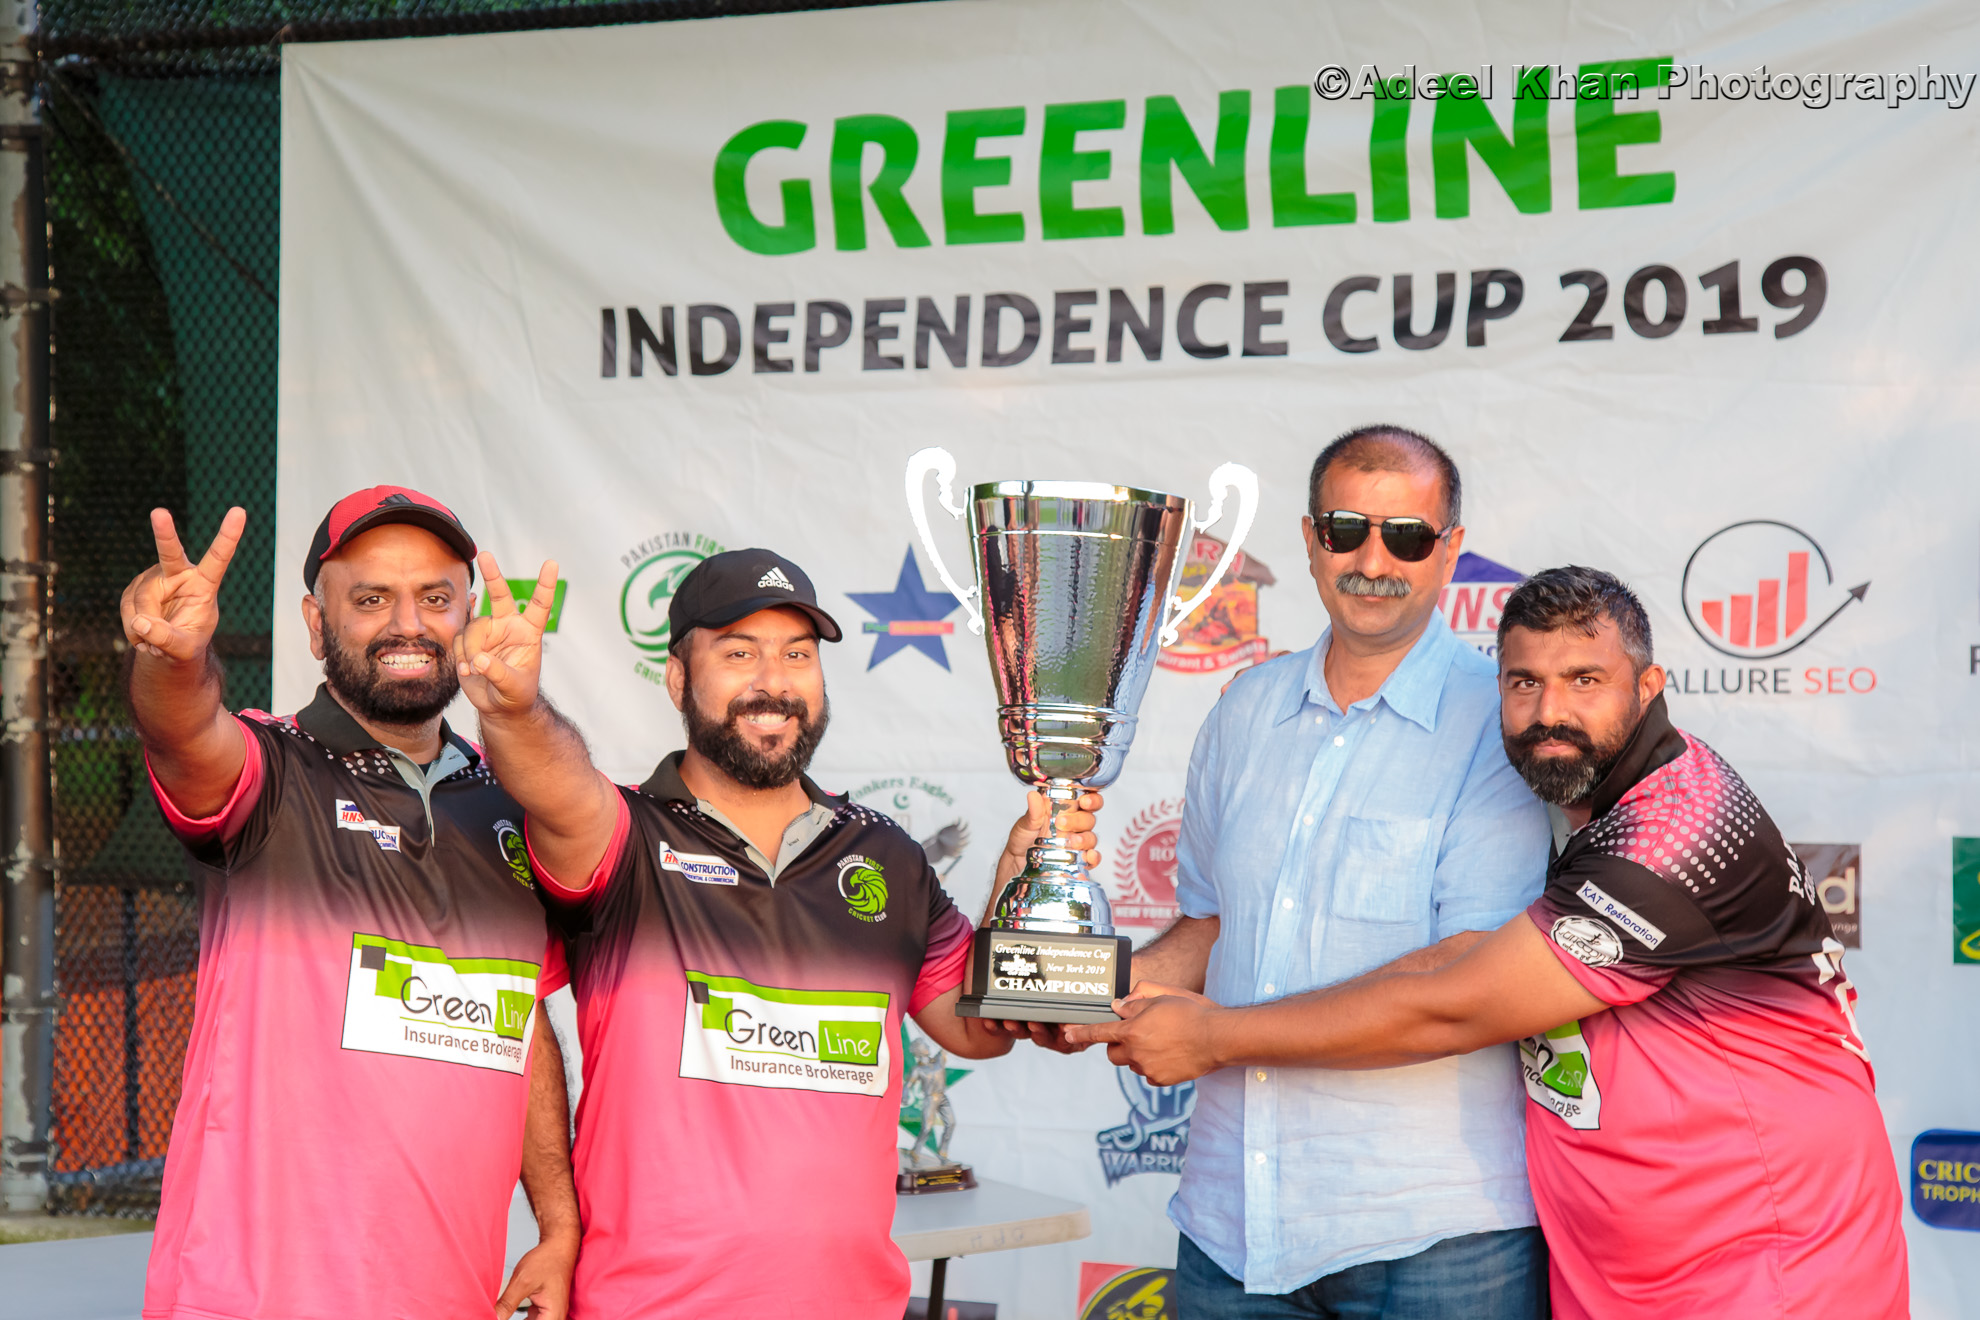 Greenline Independence Cup Champions!